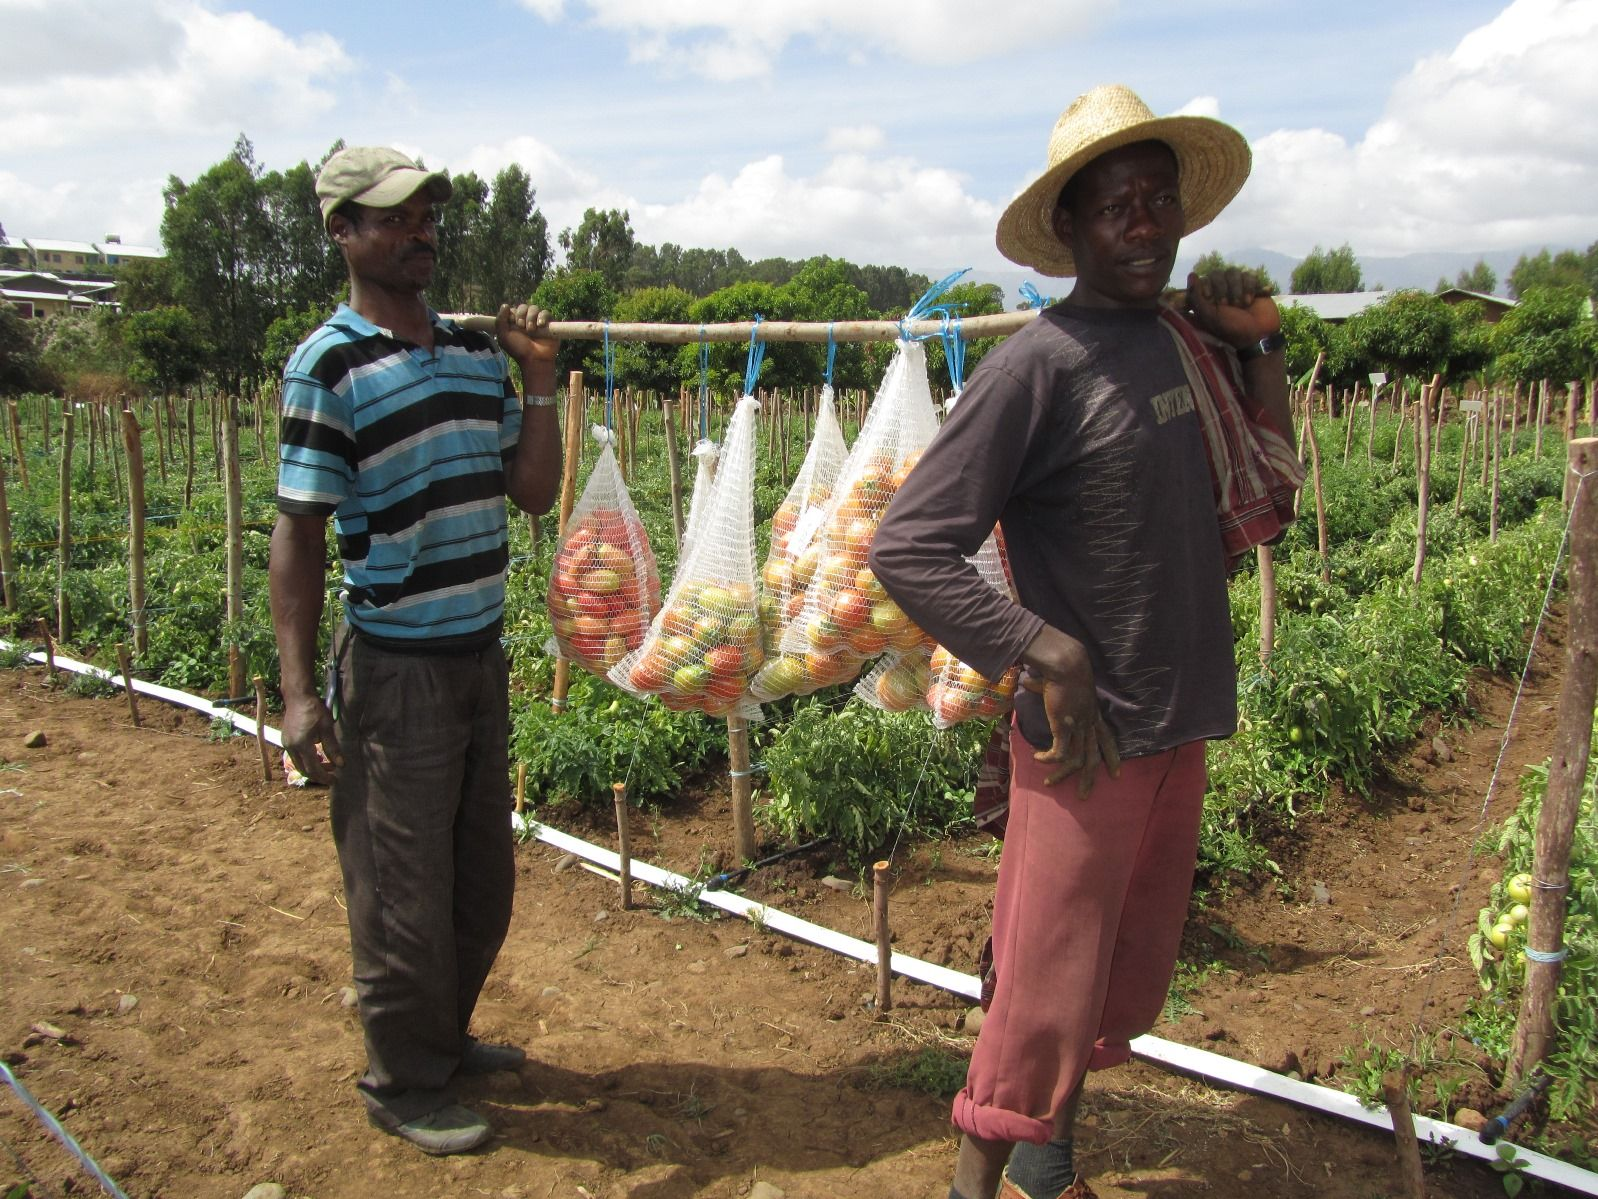 Fair Planet's seed program helped these Ethiopian farmers grow better tomatoes. Photo: courtesy